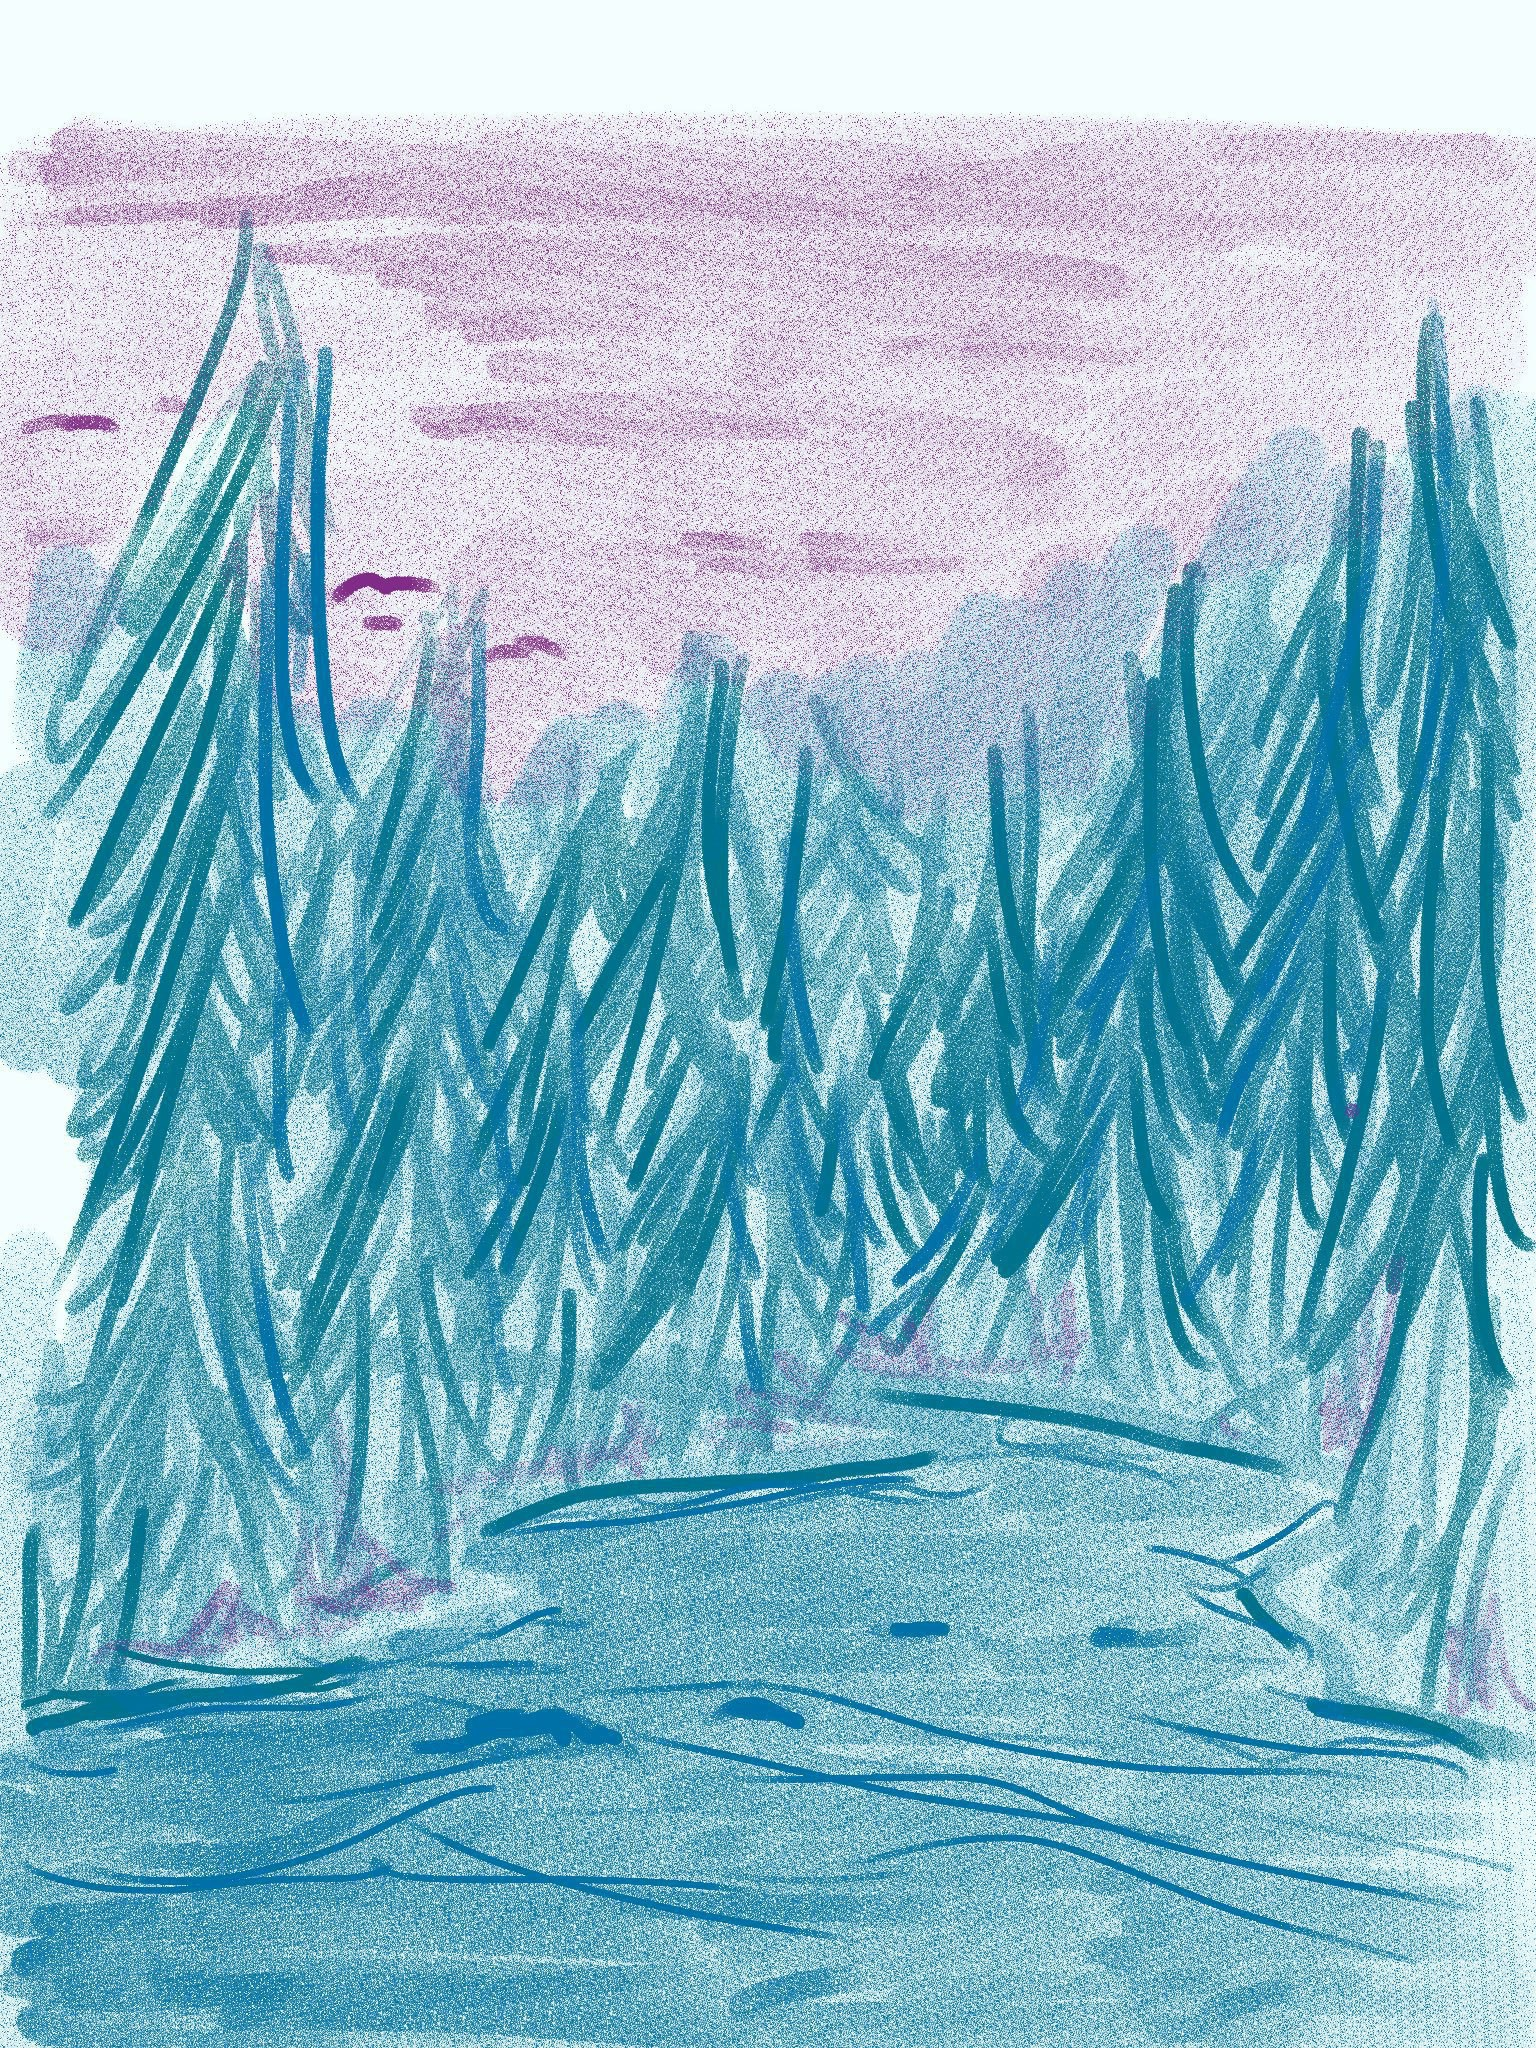 Drawn with Tactilis for ipad, river running thru forest